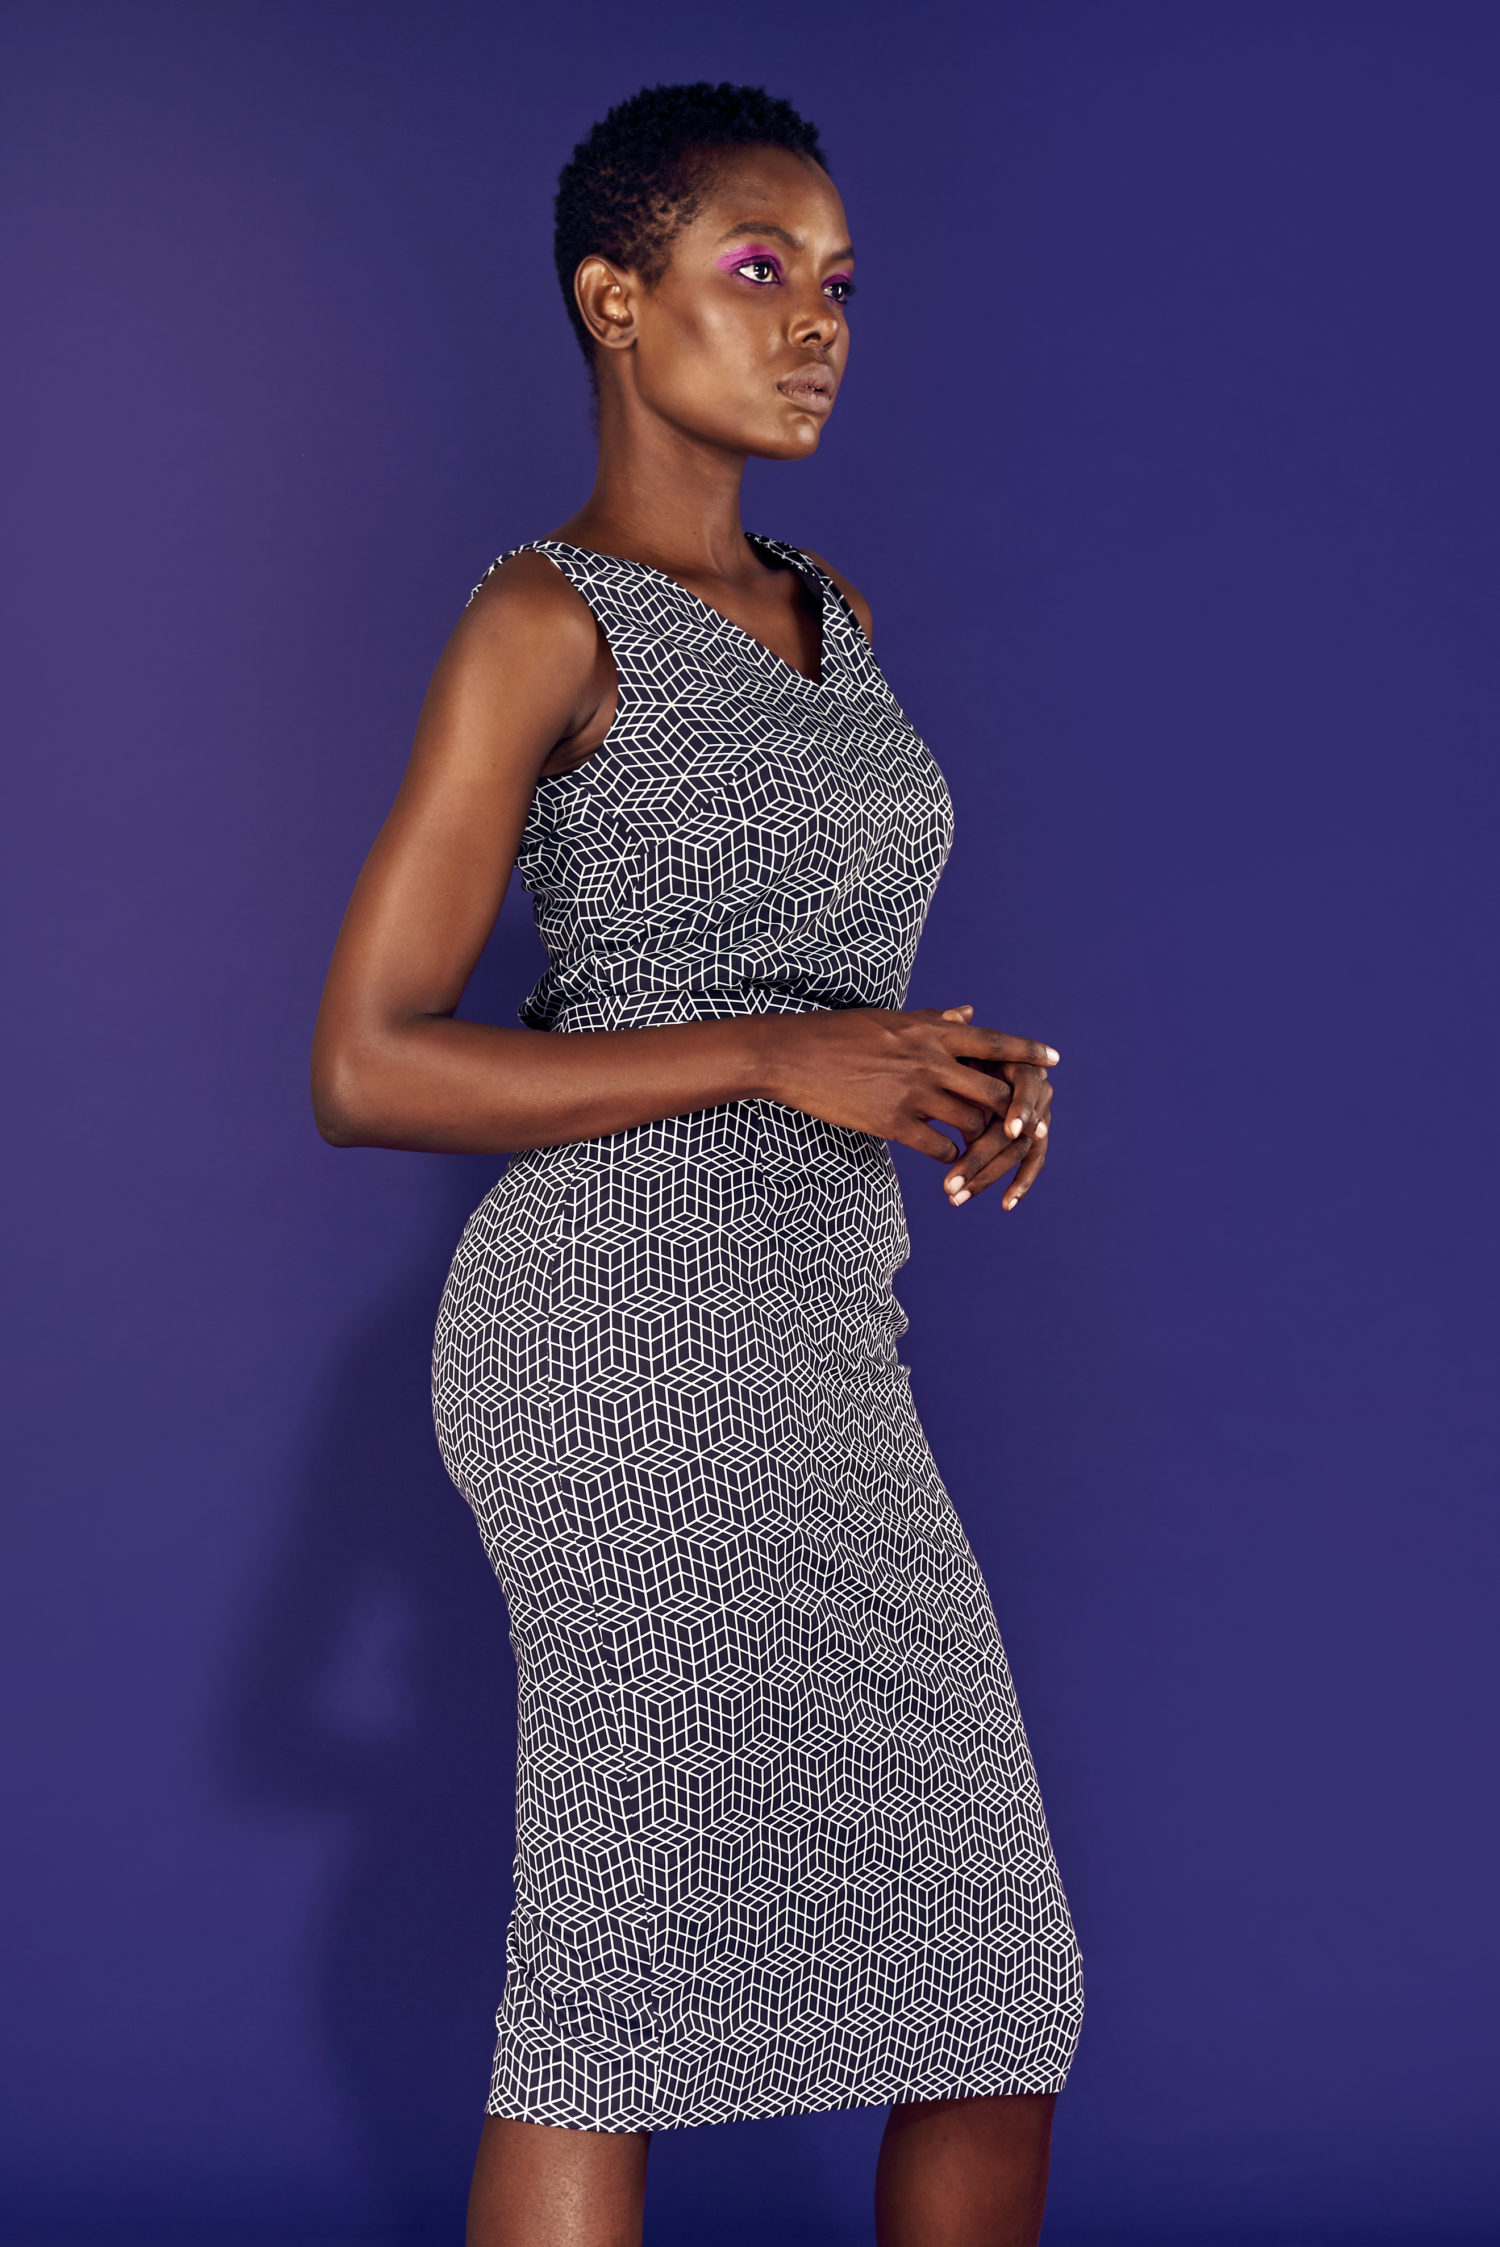 Furaha Bishota on Reinventing African Print, CocoLili and Working With Diana Opoti